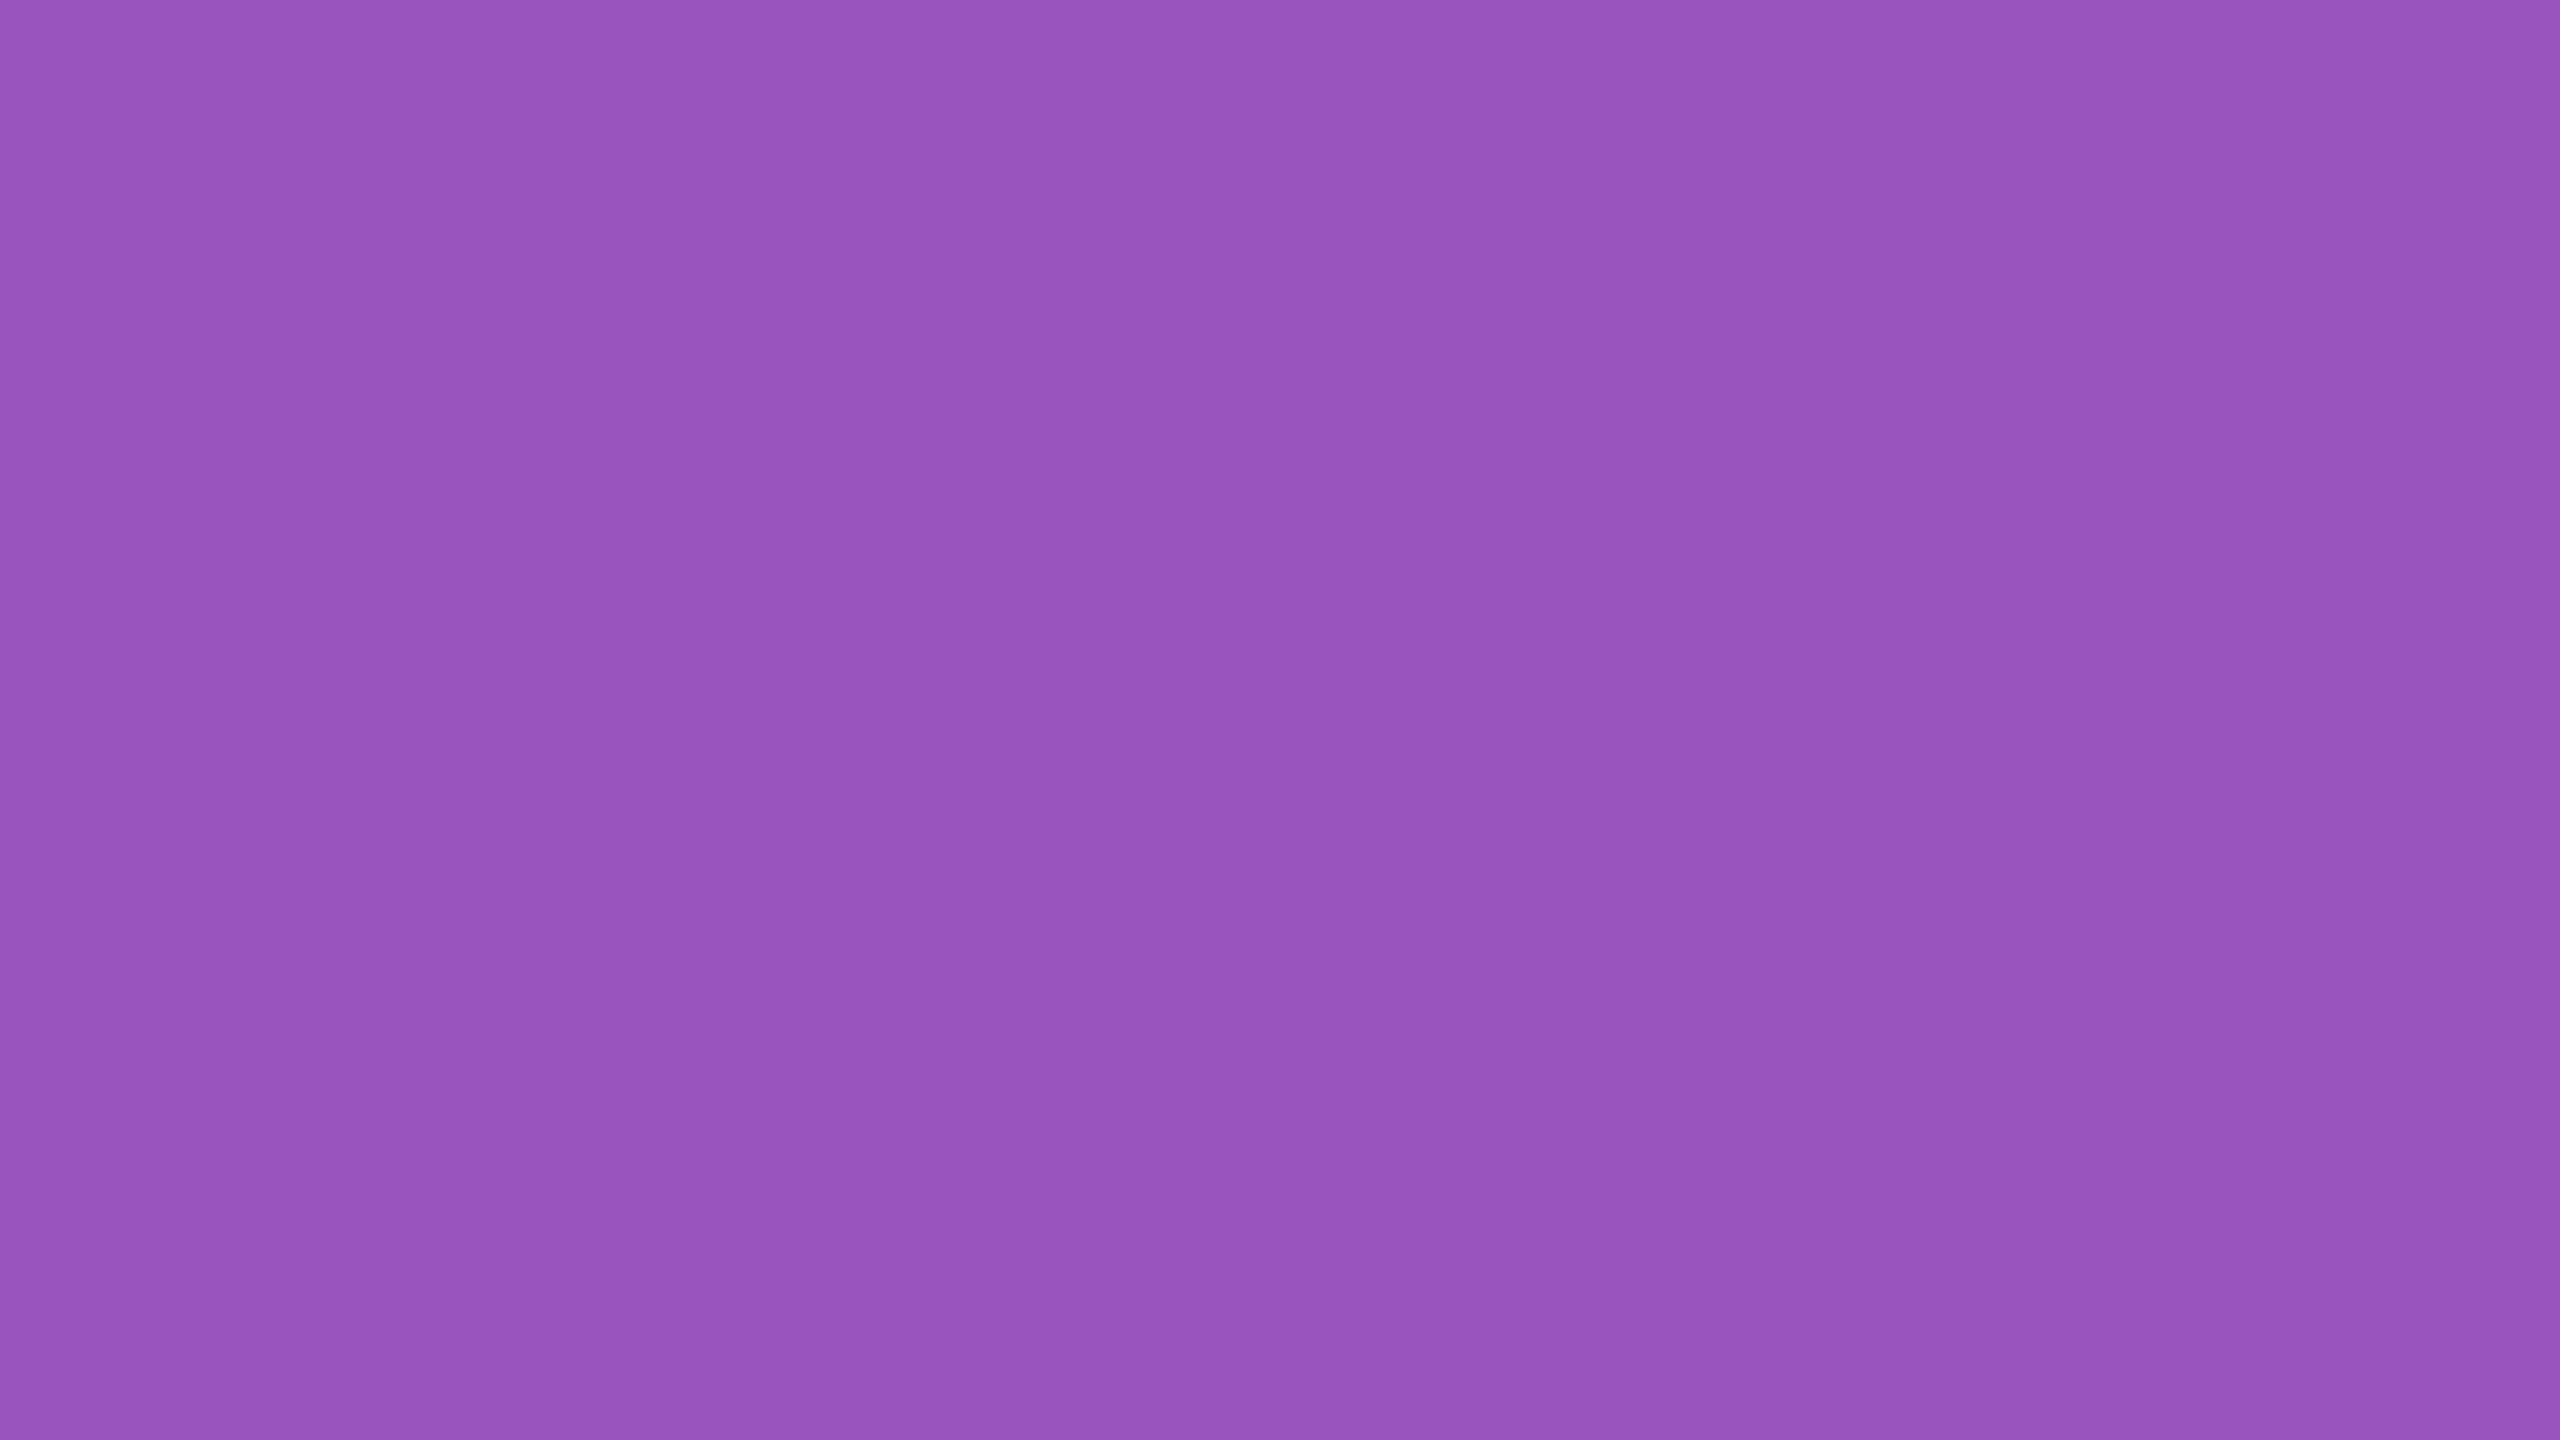 2560x1440 Deep Lilac Solid Color Background